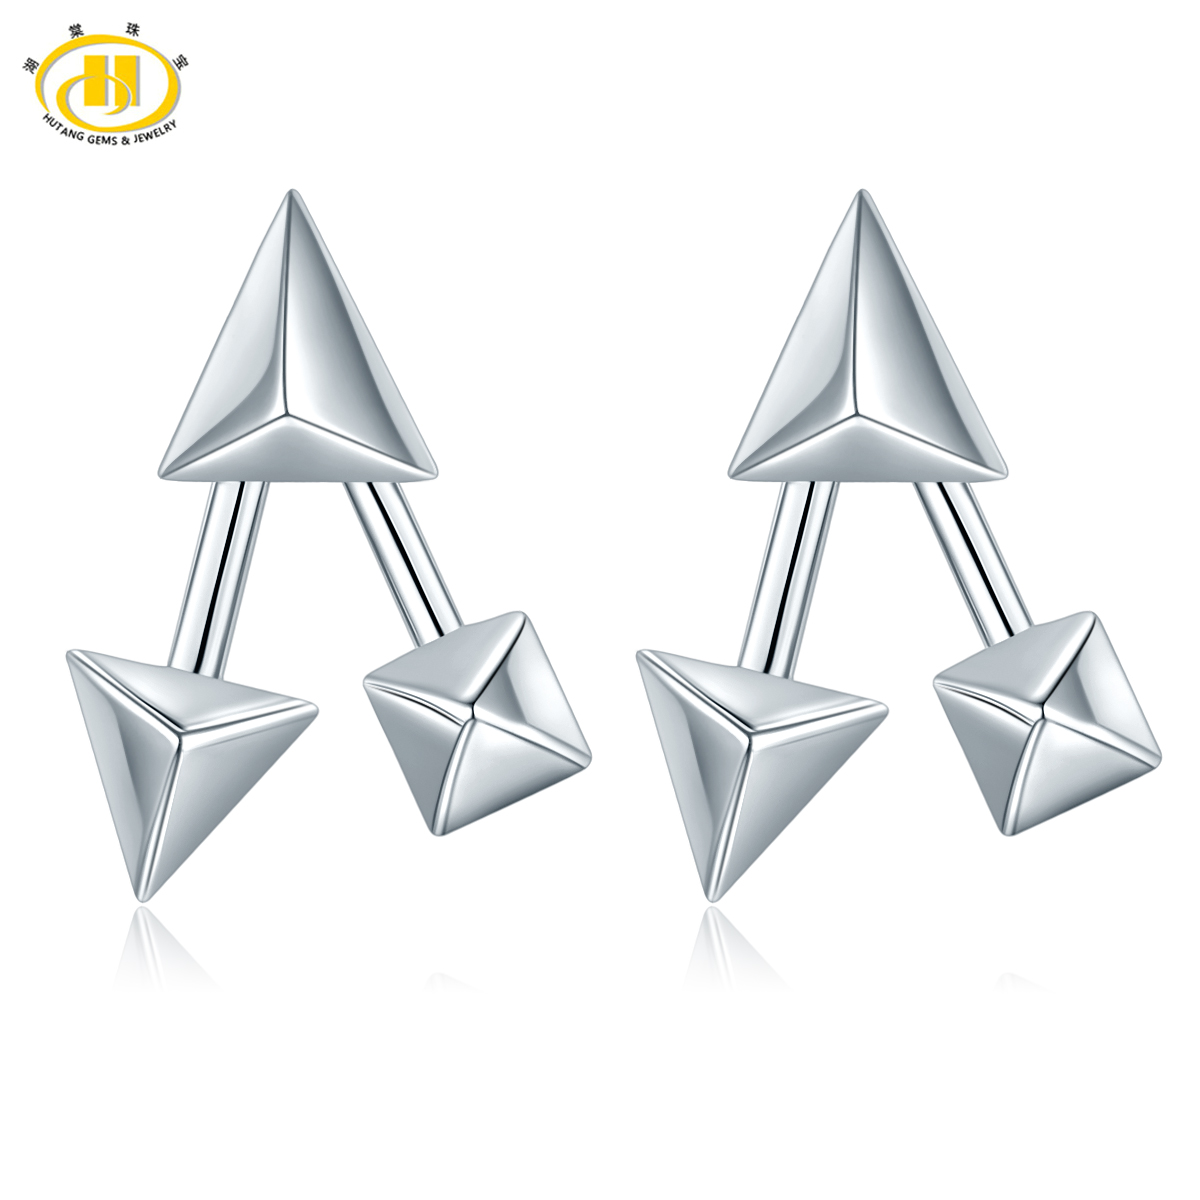 Hutang Geometry Solid 925 Sterling Silver Earrings Fine Jewelry Punk Rock Stylish Style C New Design Earring for Women pair of characteristic punk style silver colored earrings for women